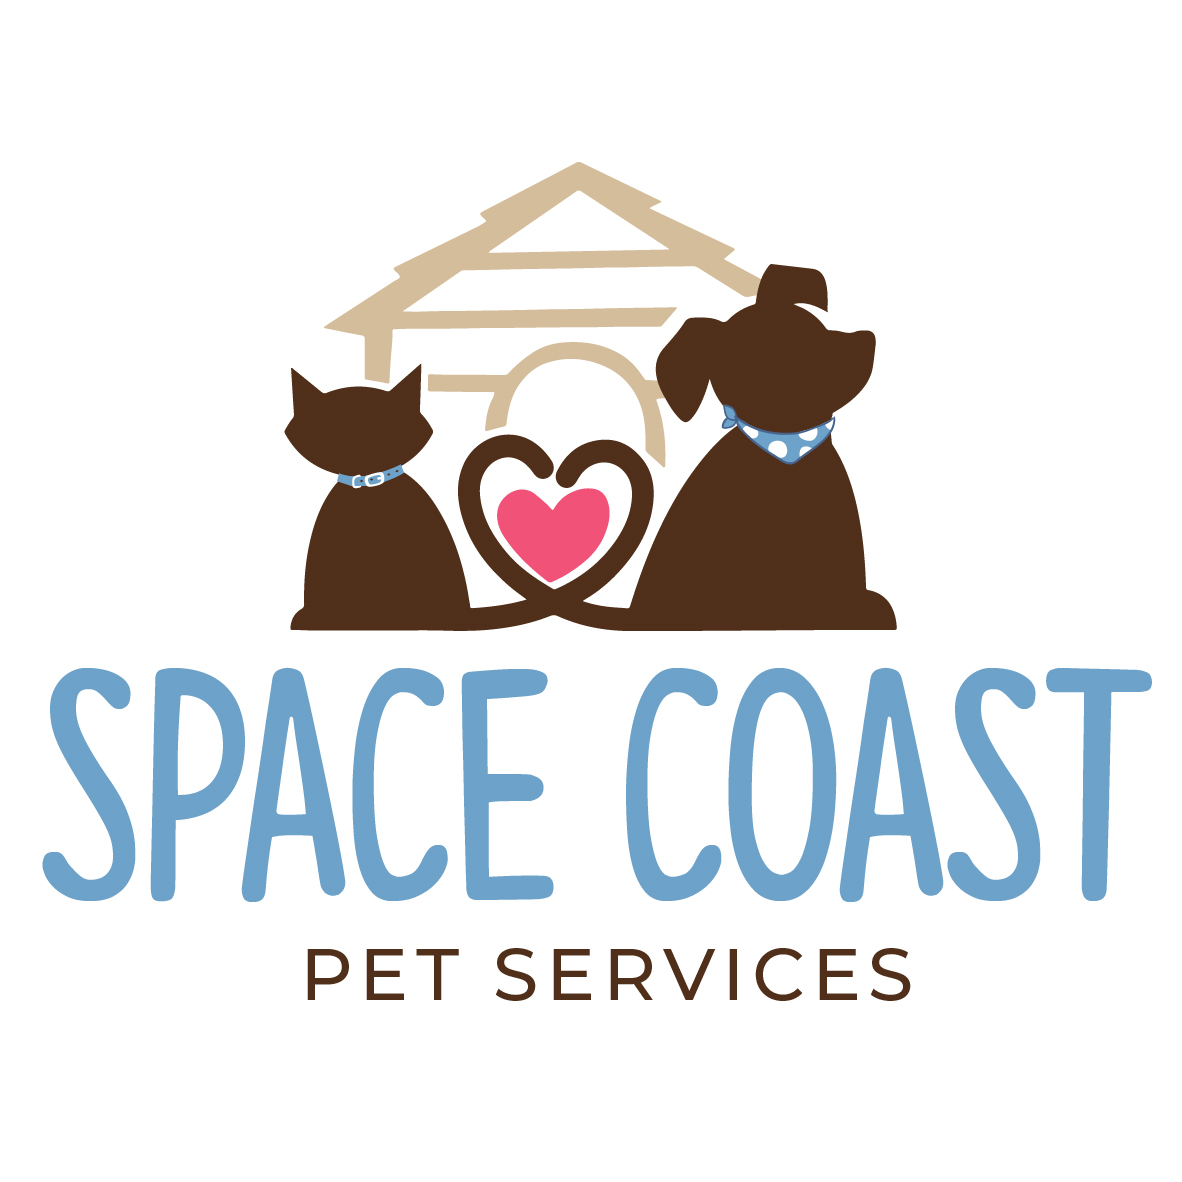 Space Coast Pet Services